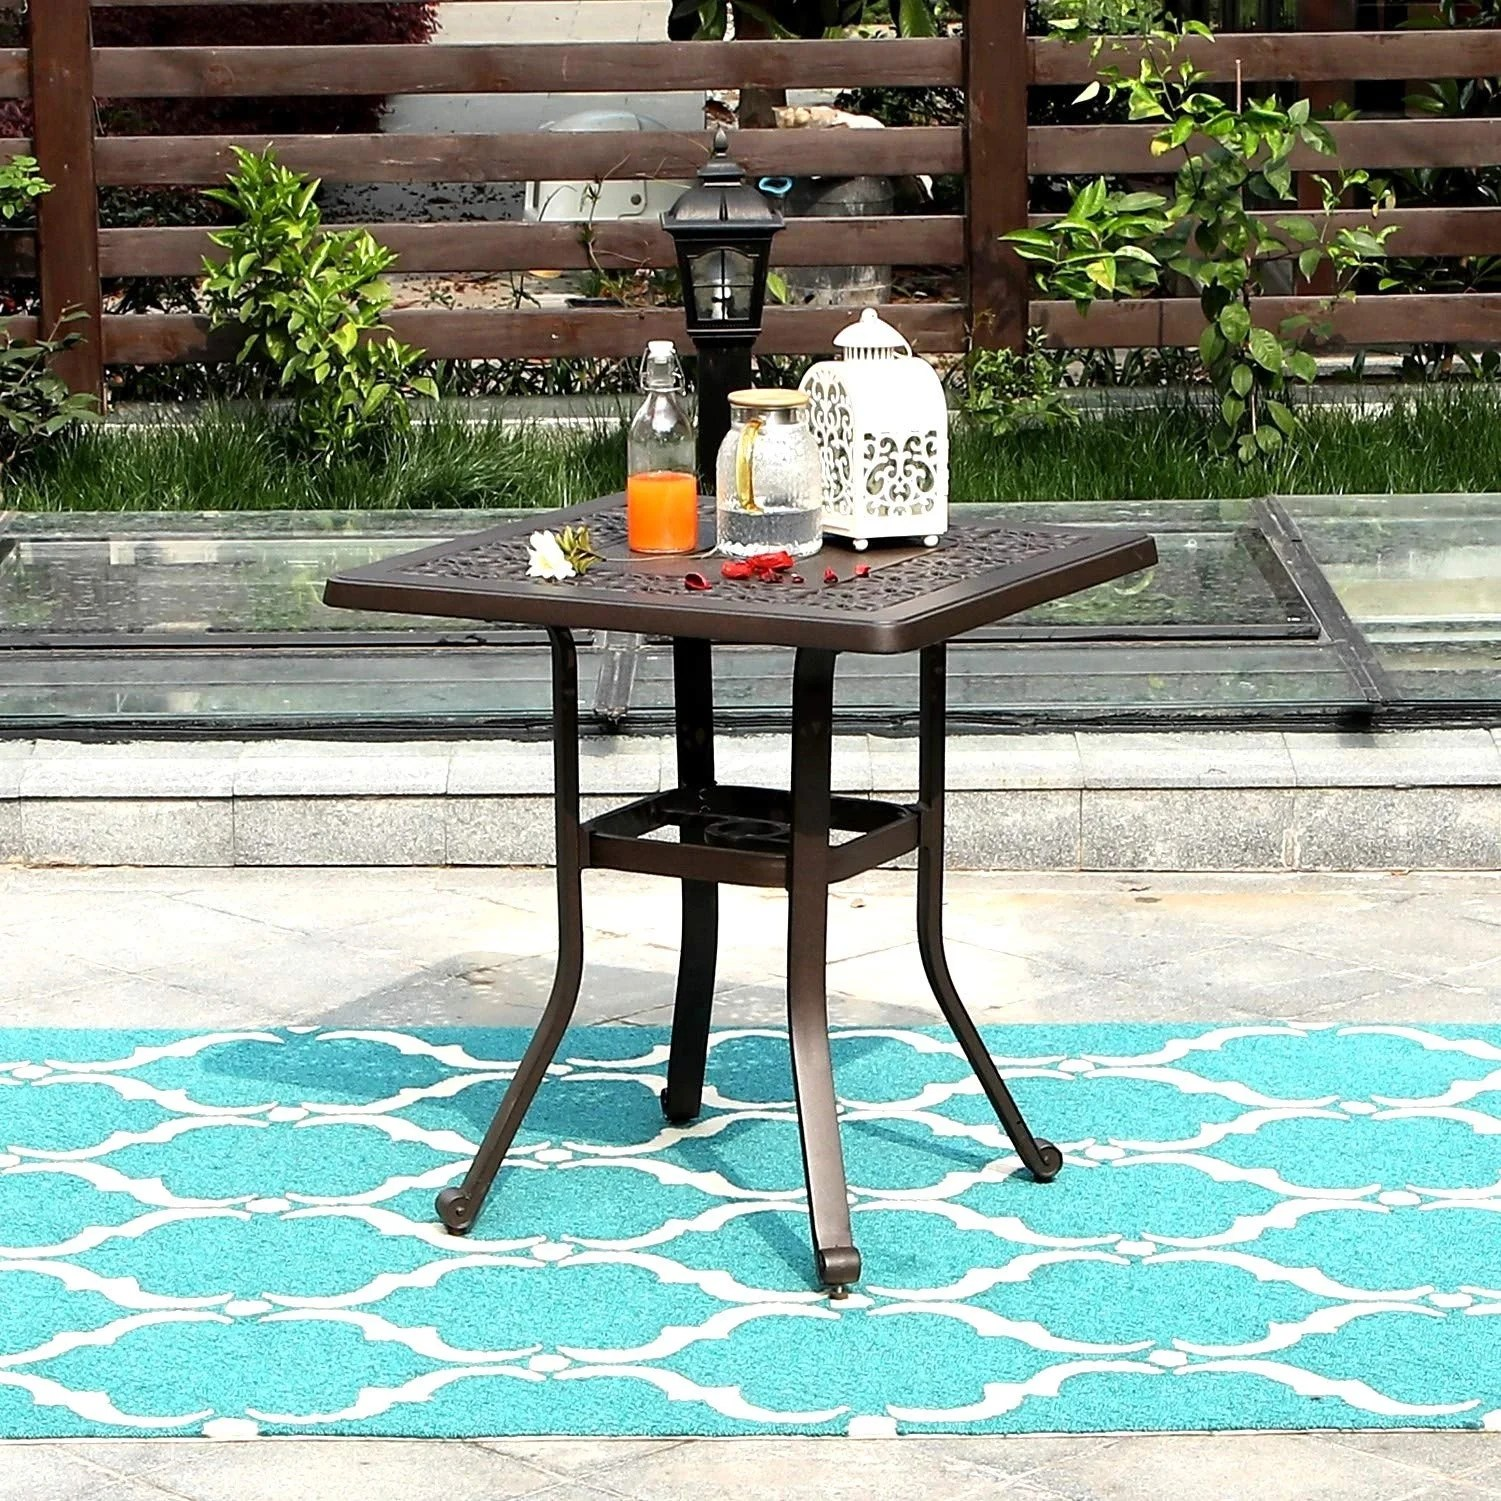 sophia william outdoor patio dining table square modern cast aluminum outdoor furniture dining table with umbrella hole